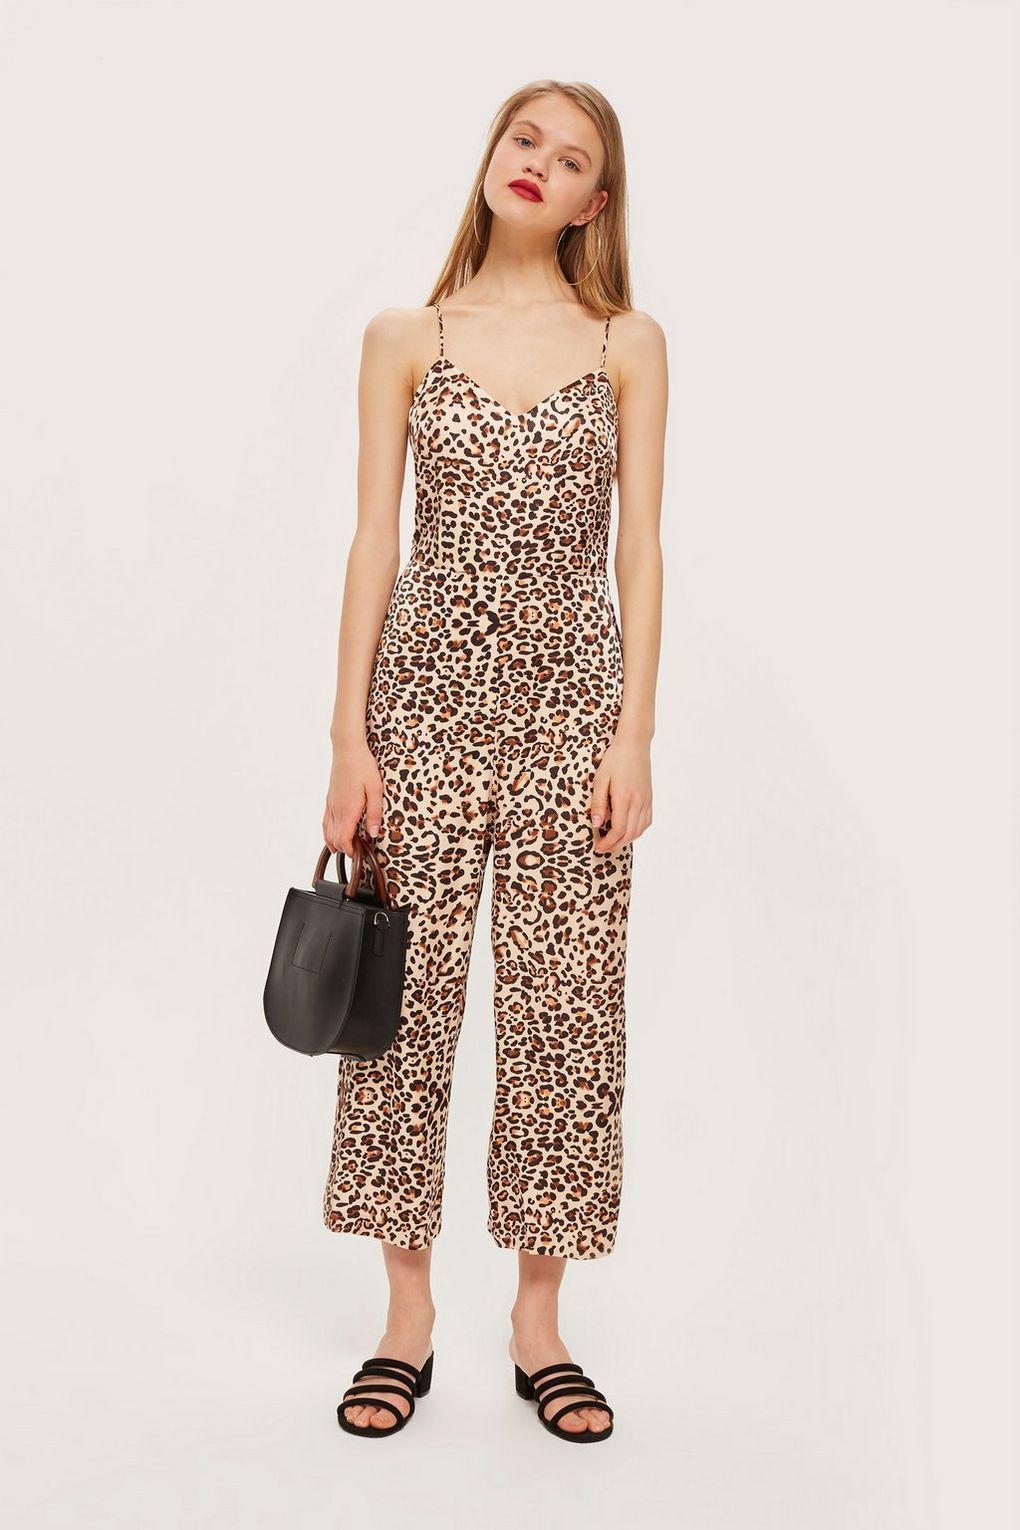 251802b060d3 Animal Print Jumpsuit - New In Fashion - New In